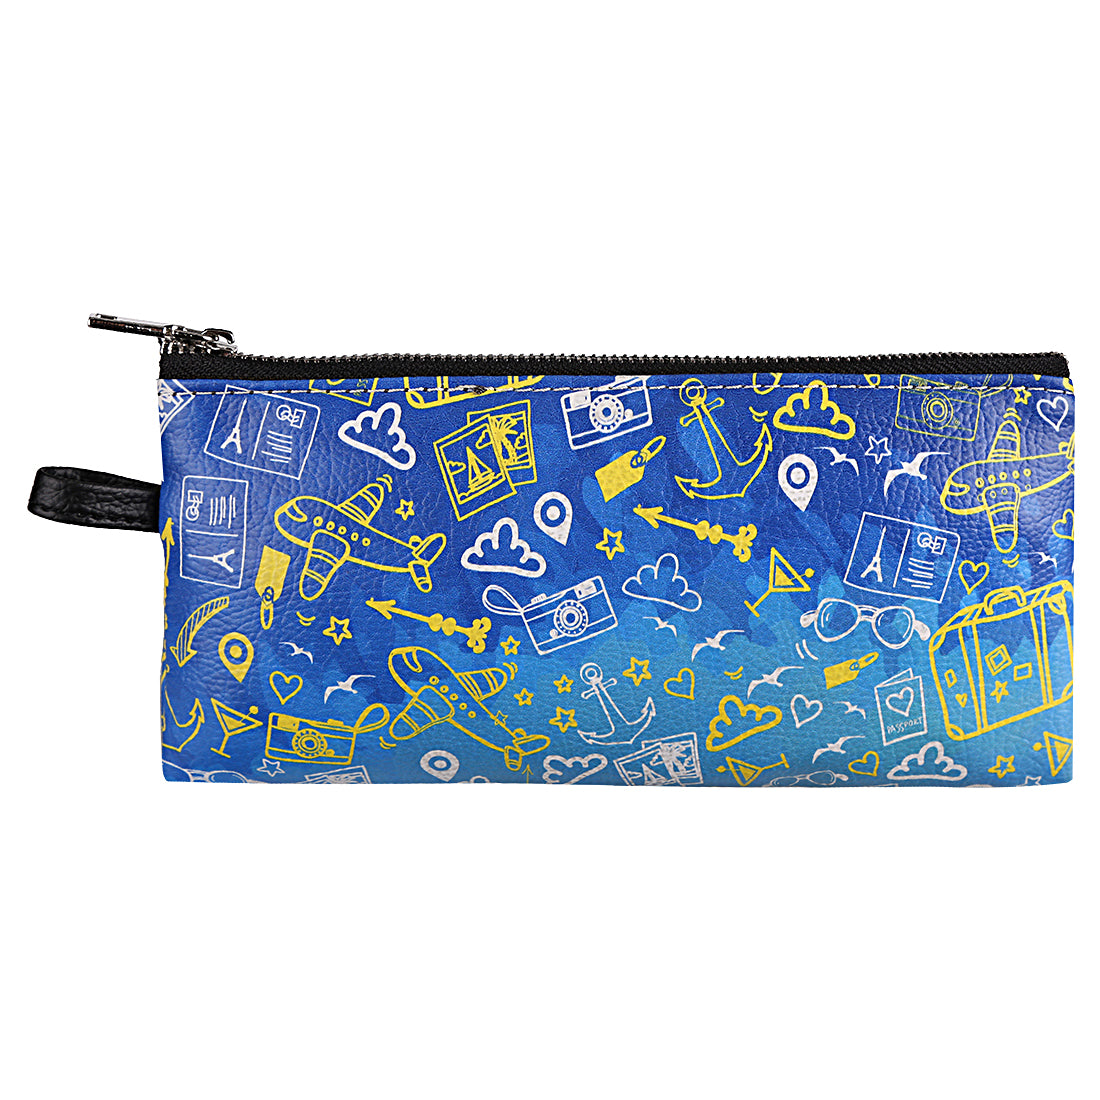 Wanderluster Multi-Purpose Medium Pouch